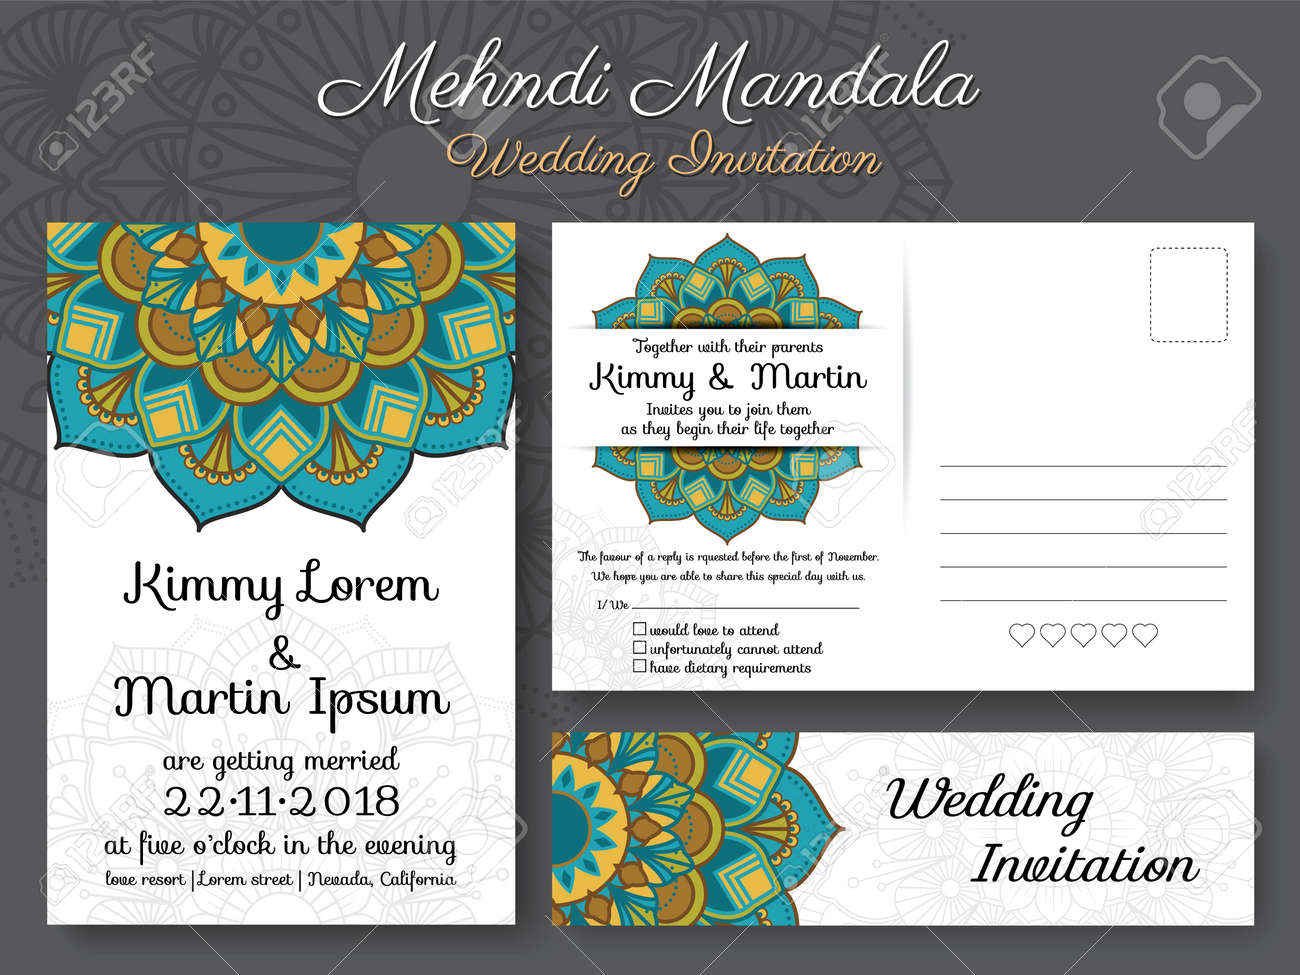 Classic Vintage Wedding Invitation Card Design With Beautiful ...